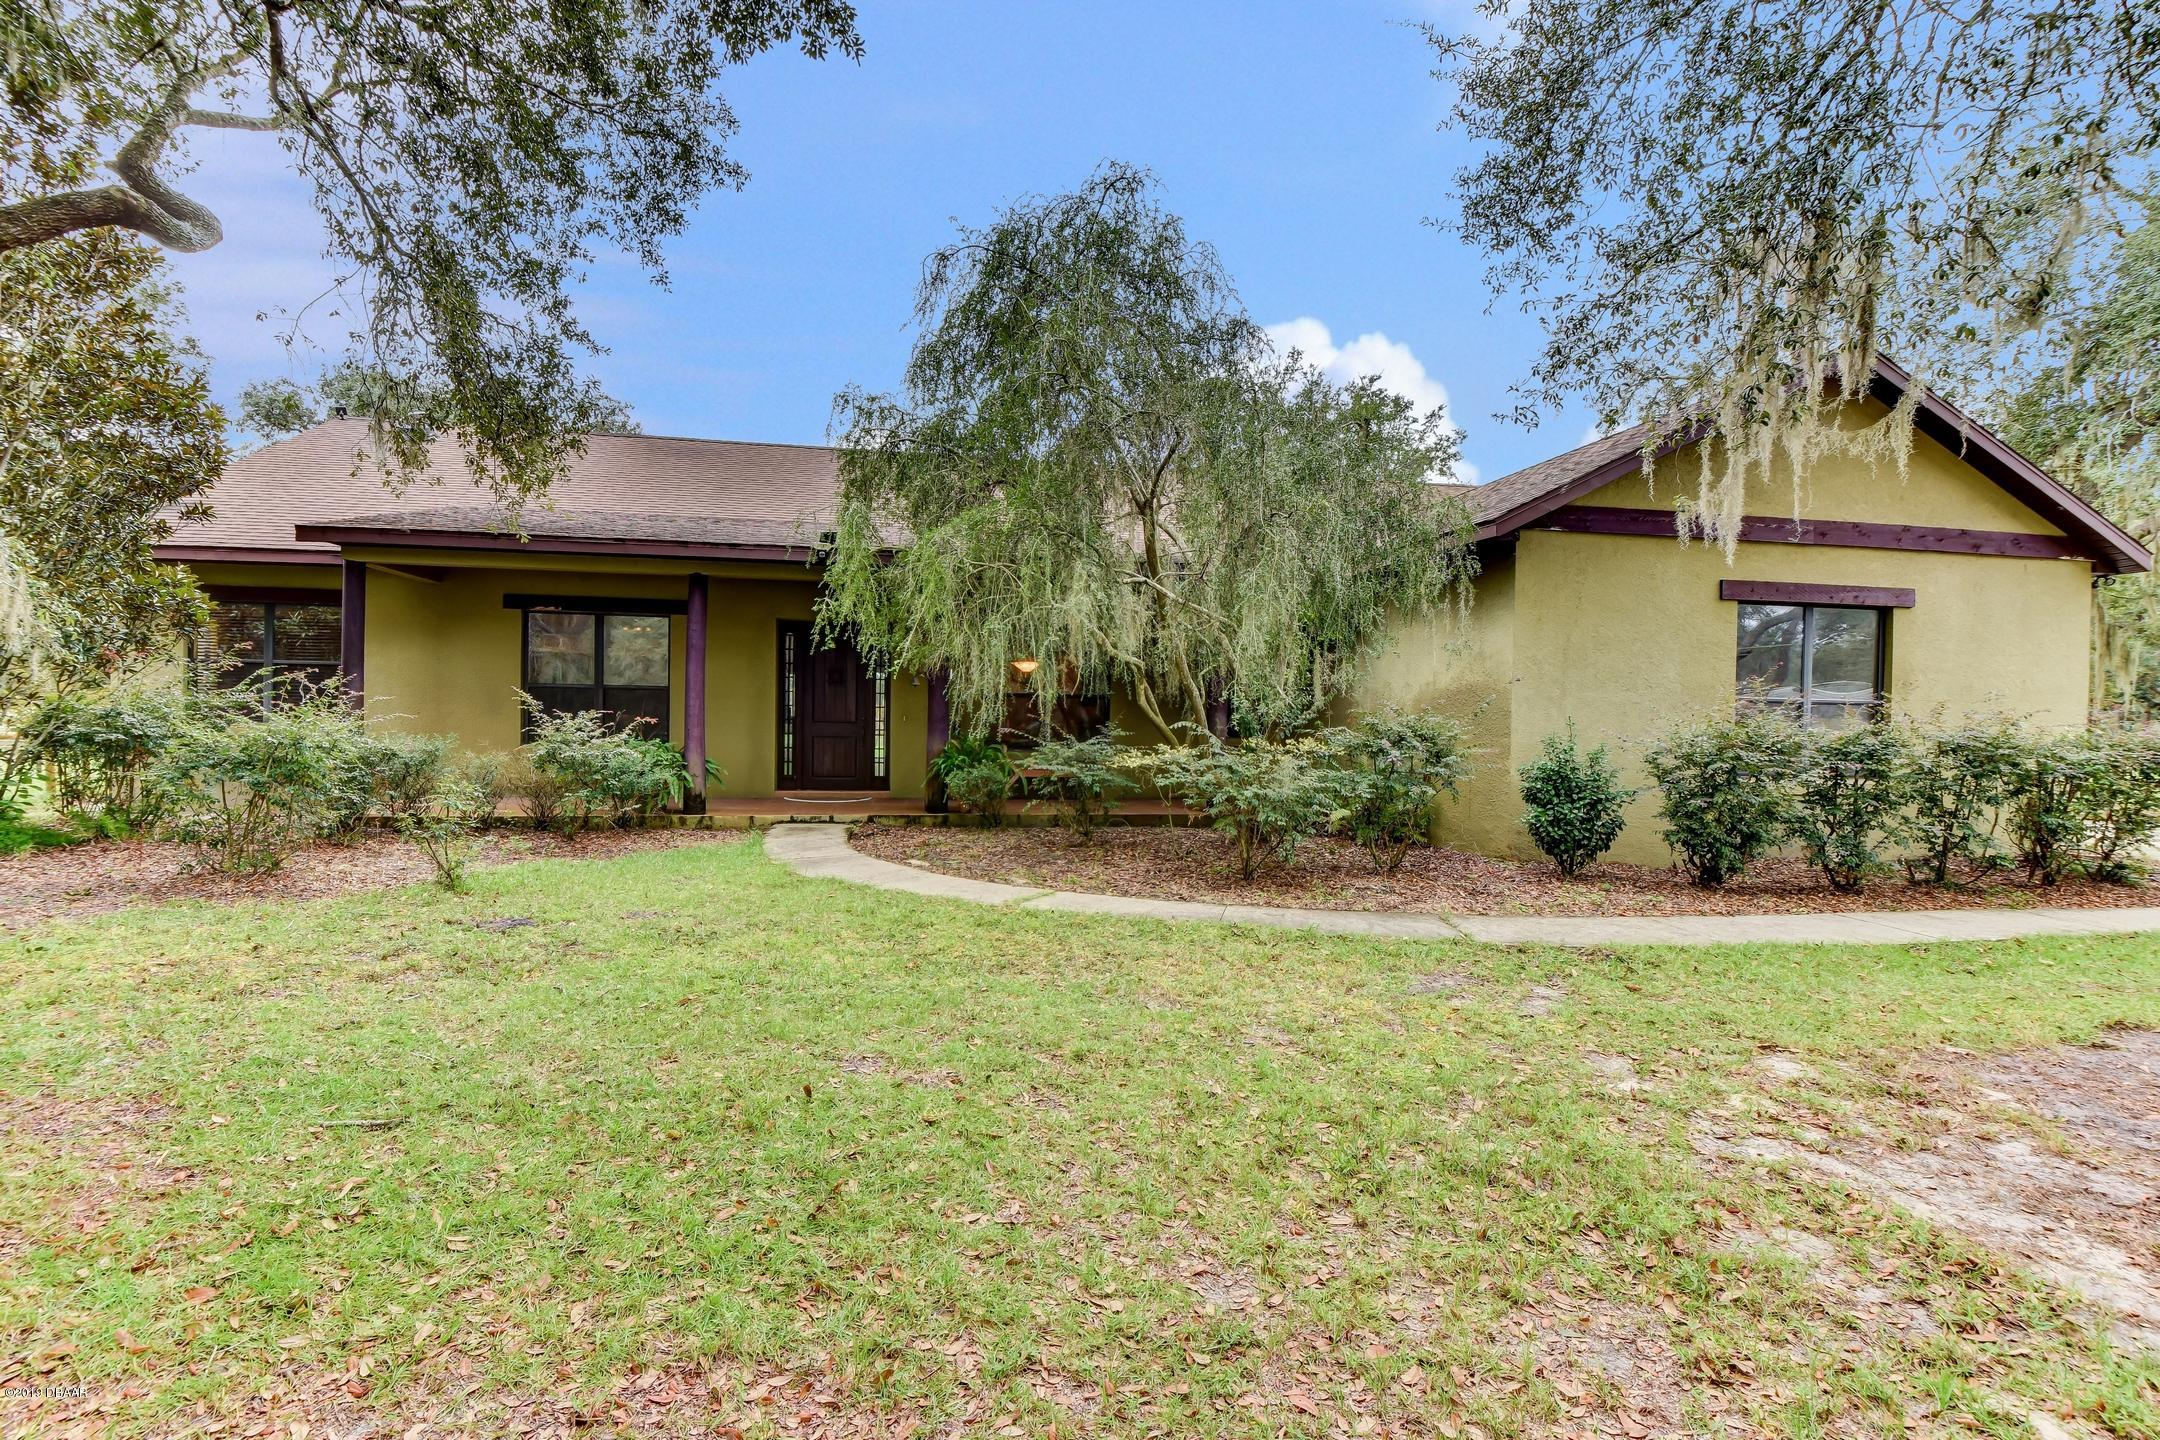 2470 Place Pond DeLeon Springs - 1